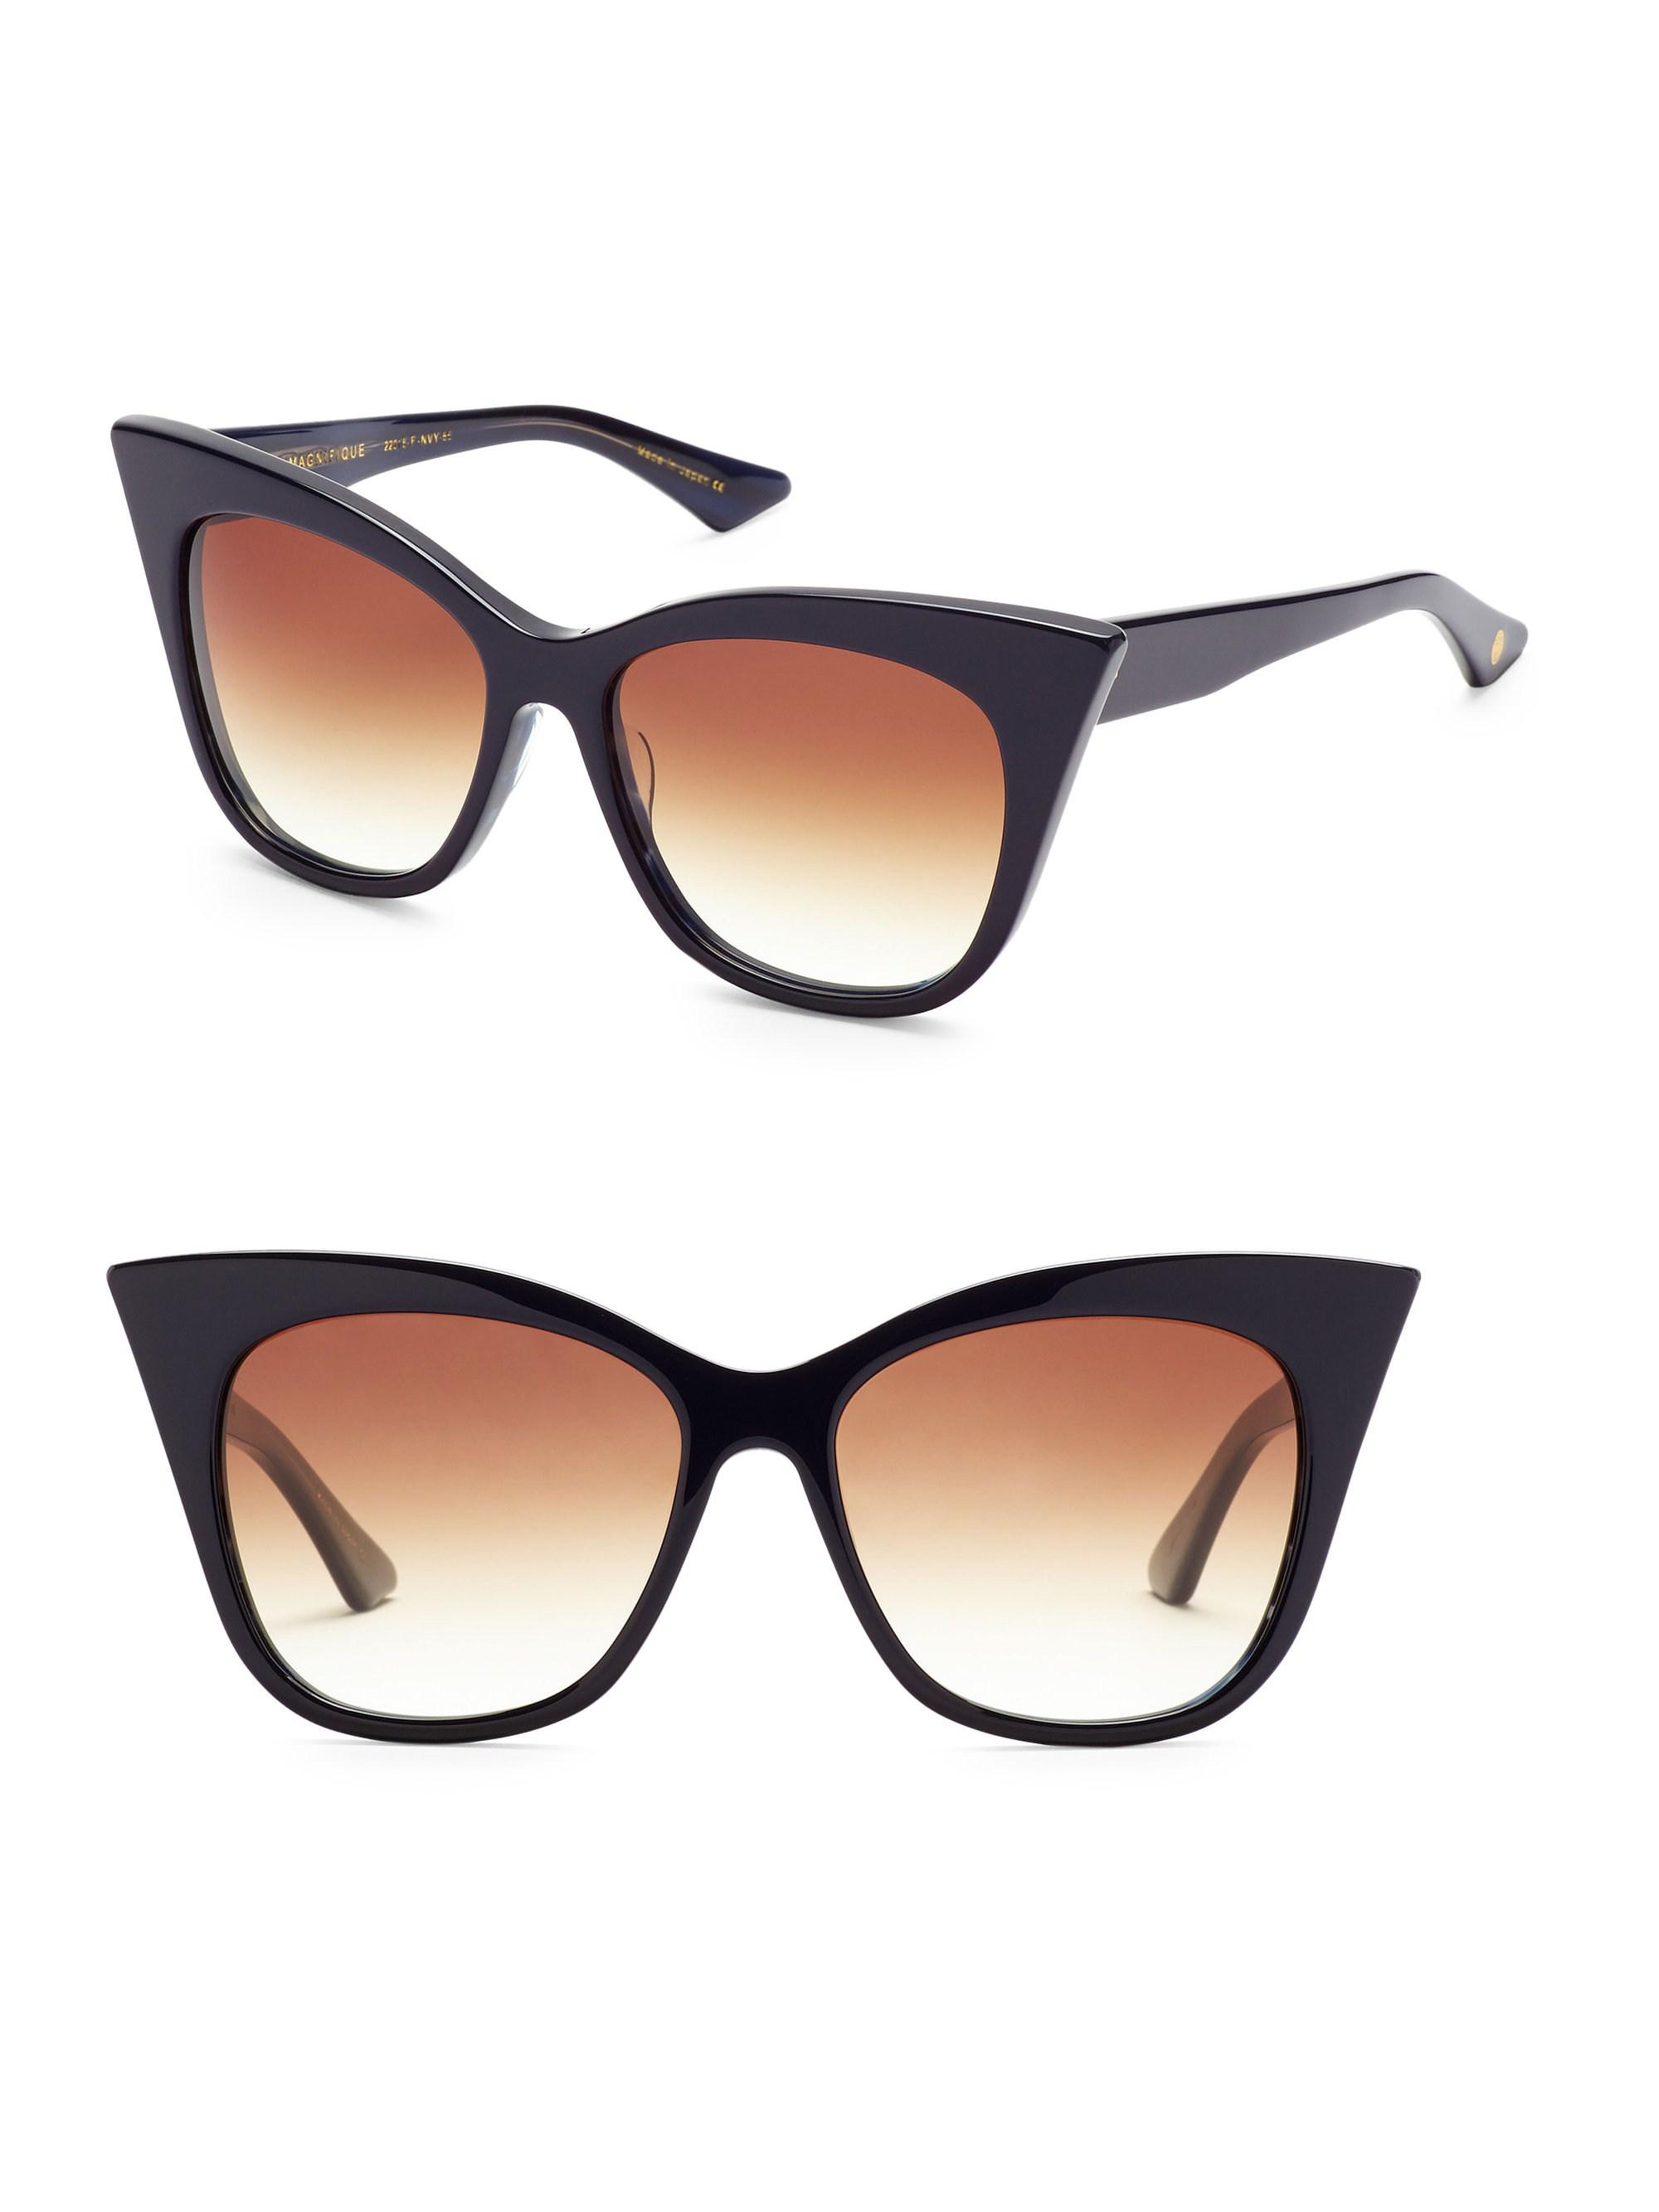 e8f98ce8faa Lyst - Dita Eyewear Magnifique 56mm Cat-eye Sunglasses in Blue